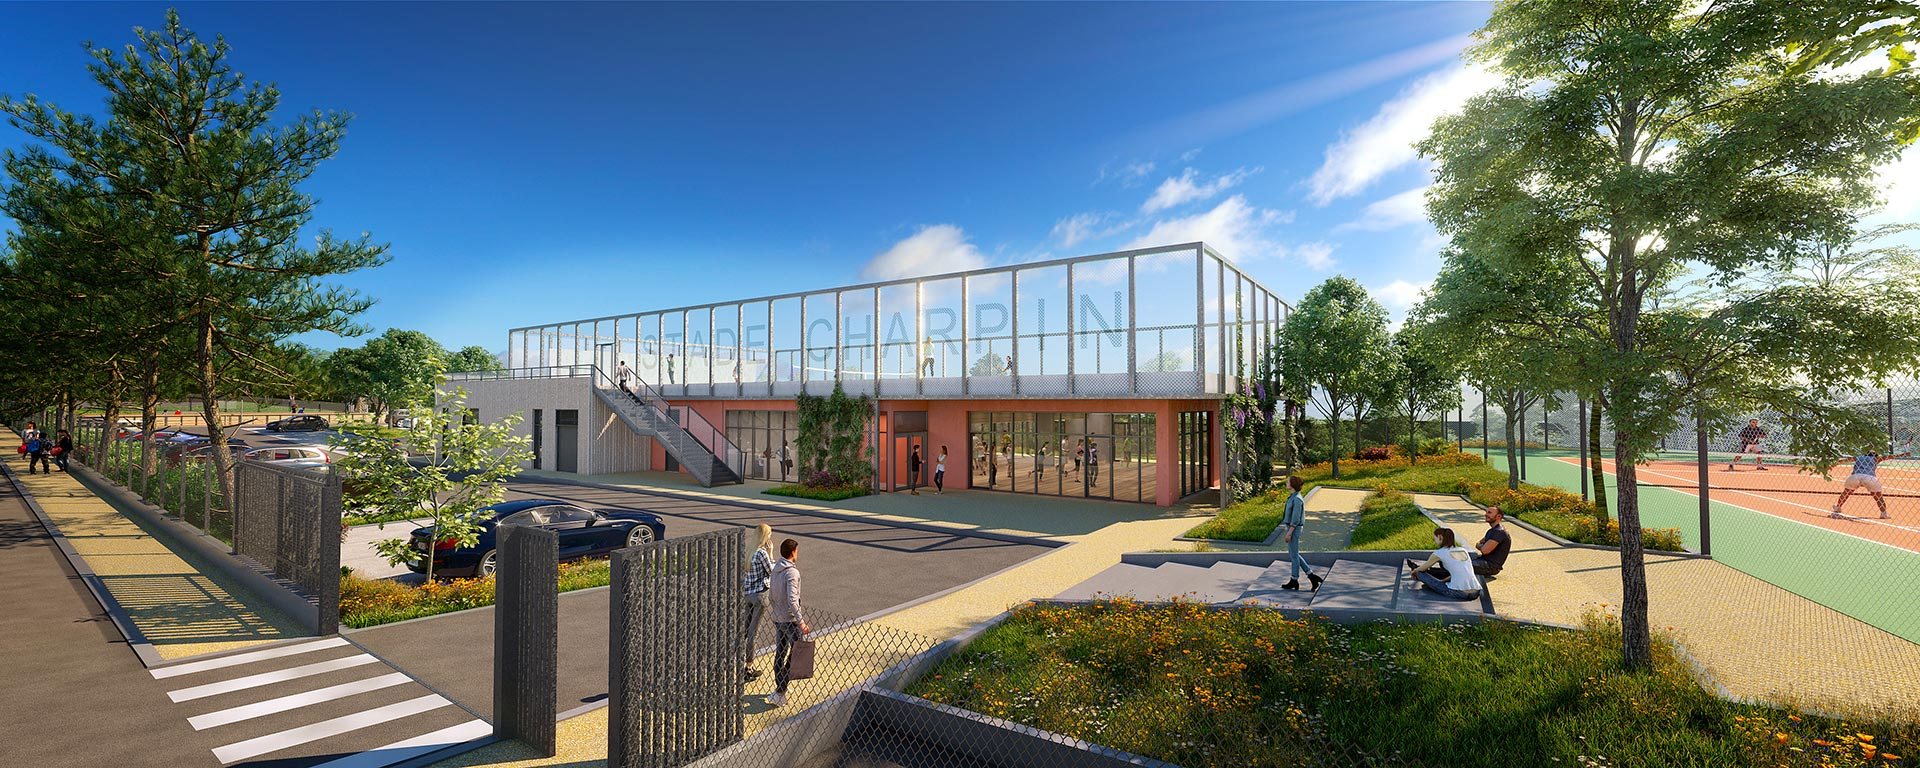 Sports centre 3D exterior architectural visualization for a contest